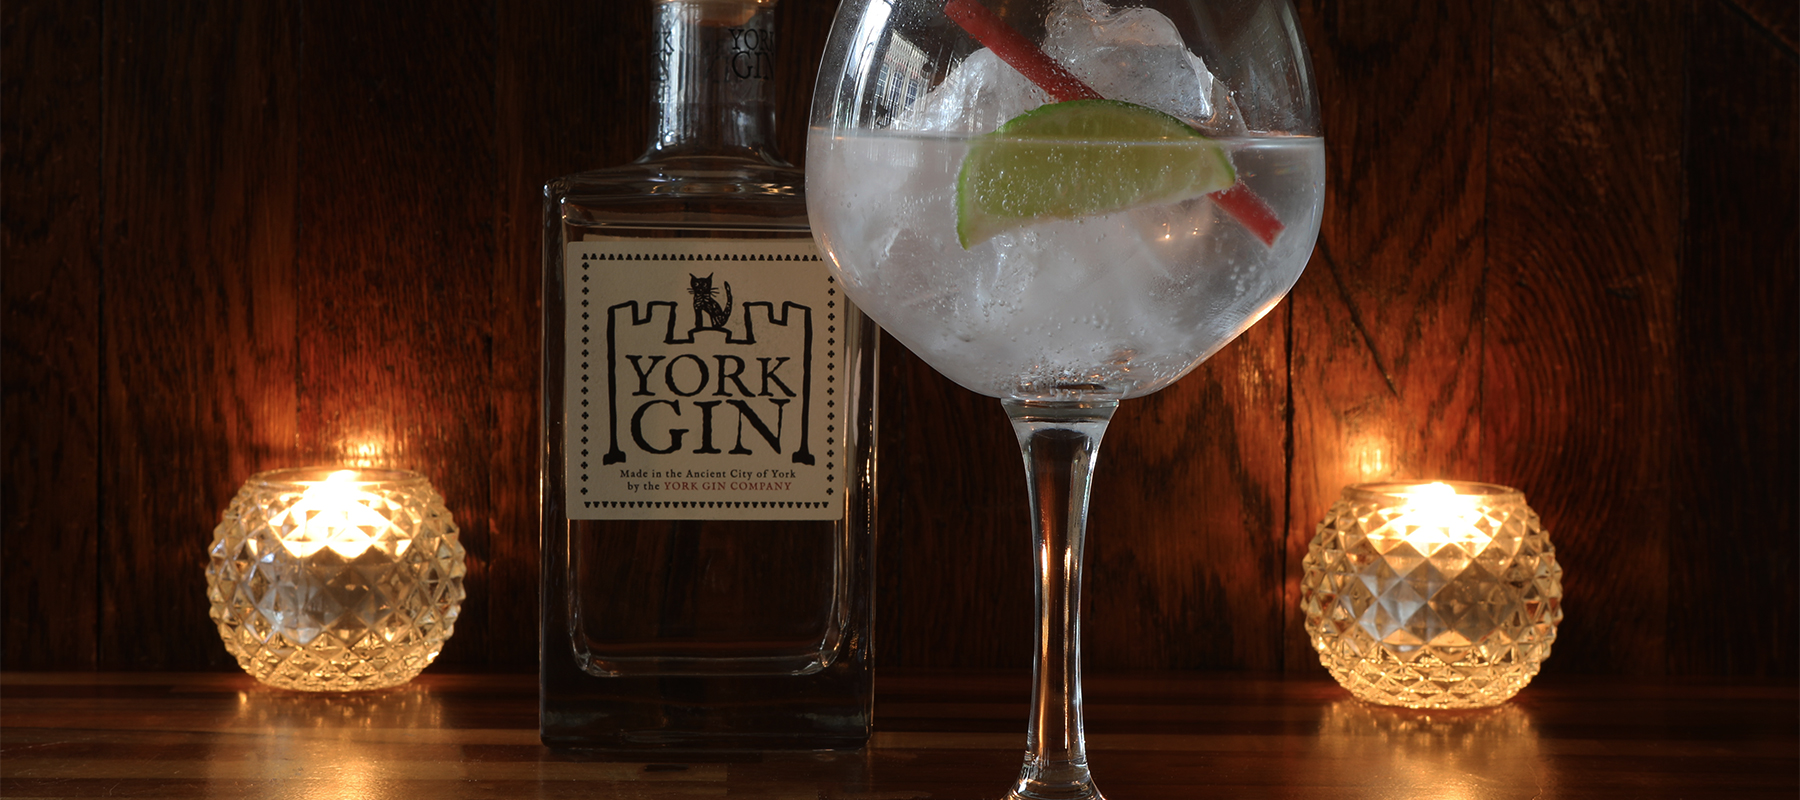 Gin Review: York Gin 42.5% abv